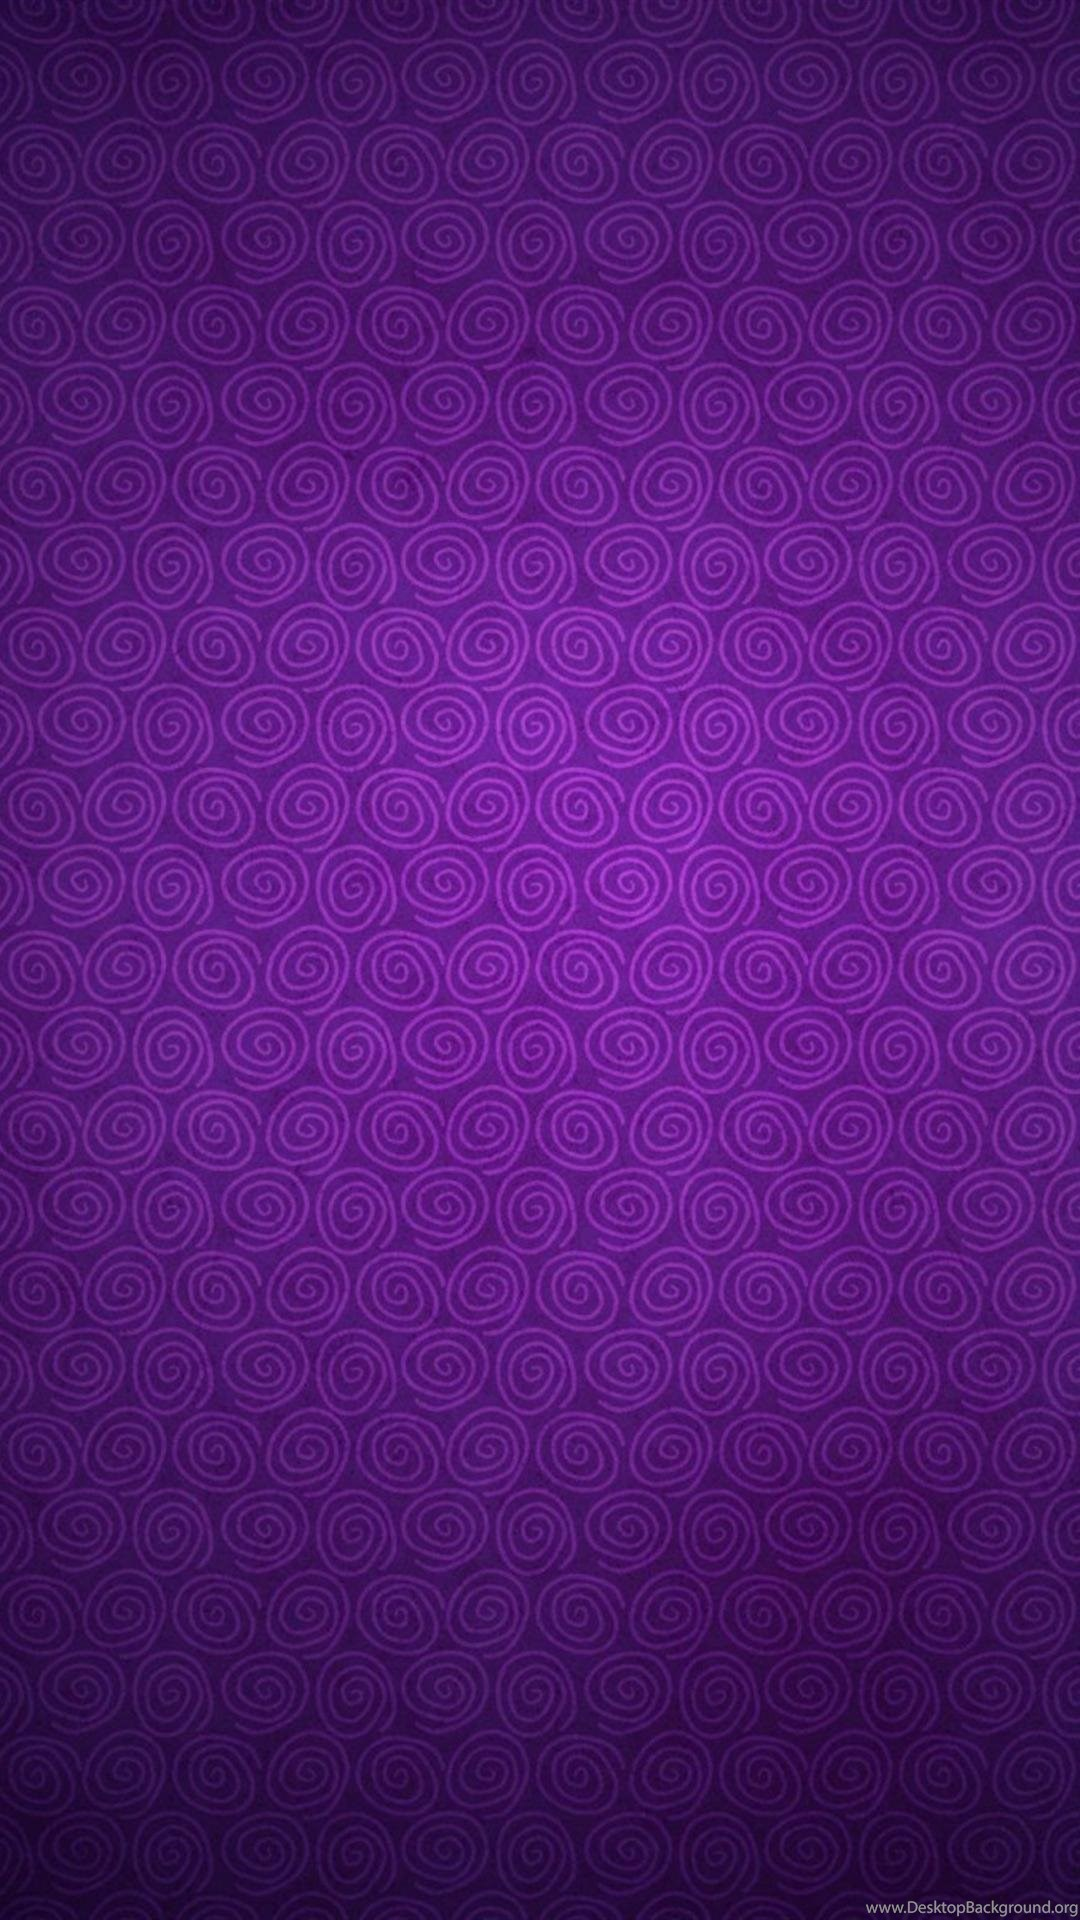 Purple Wallpapers Mobile Phone HD Free Images Desktop Background